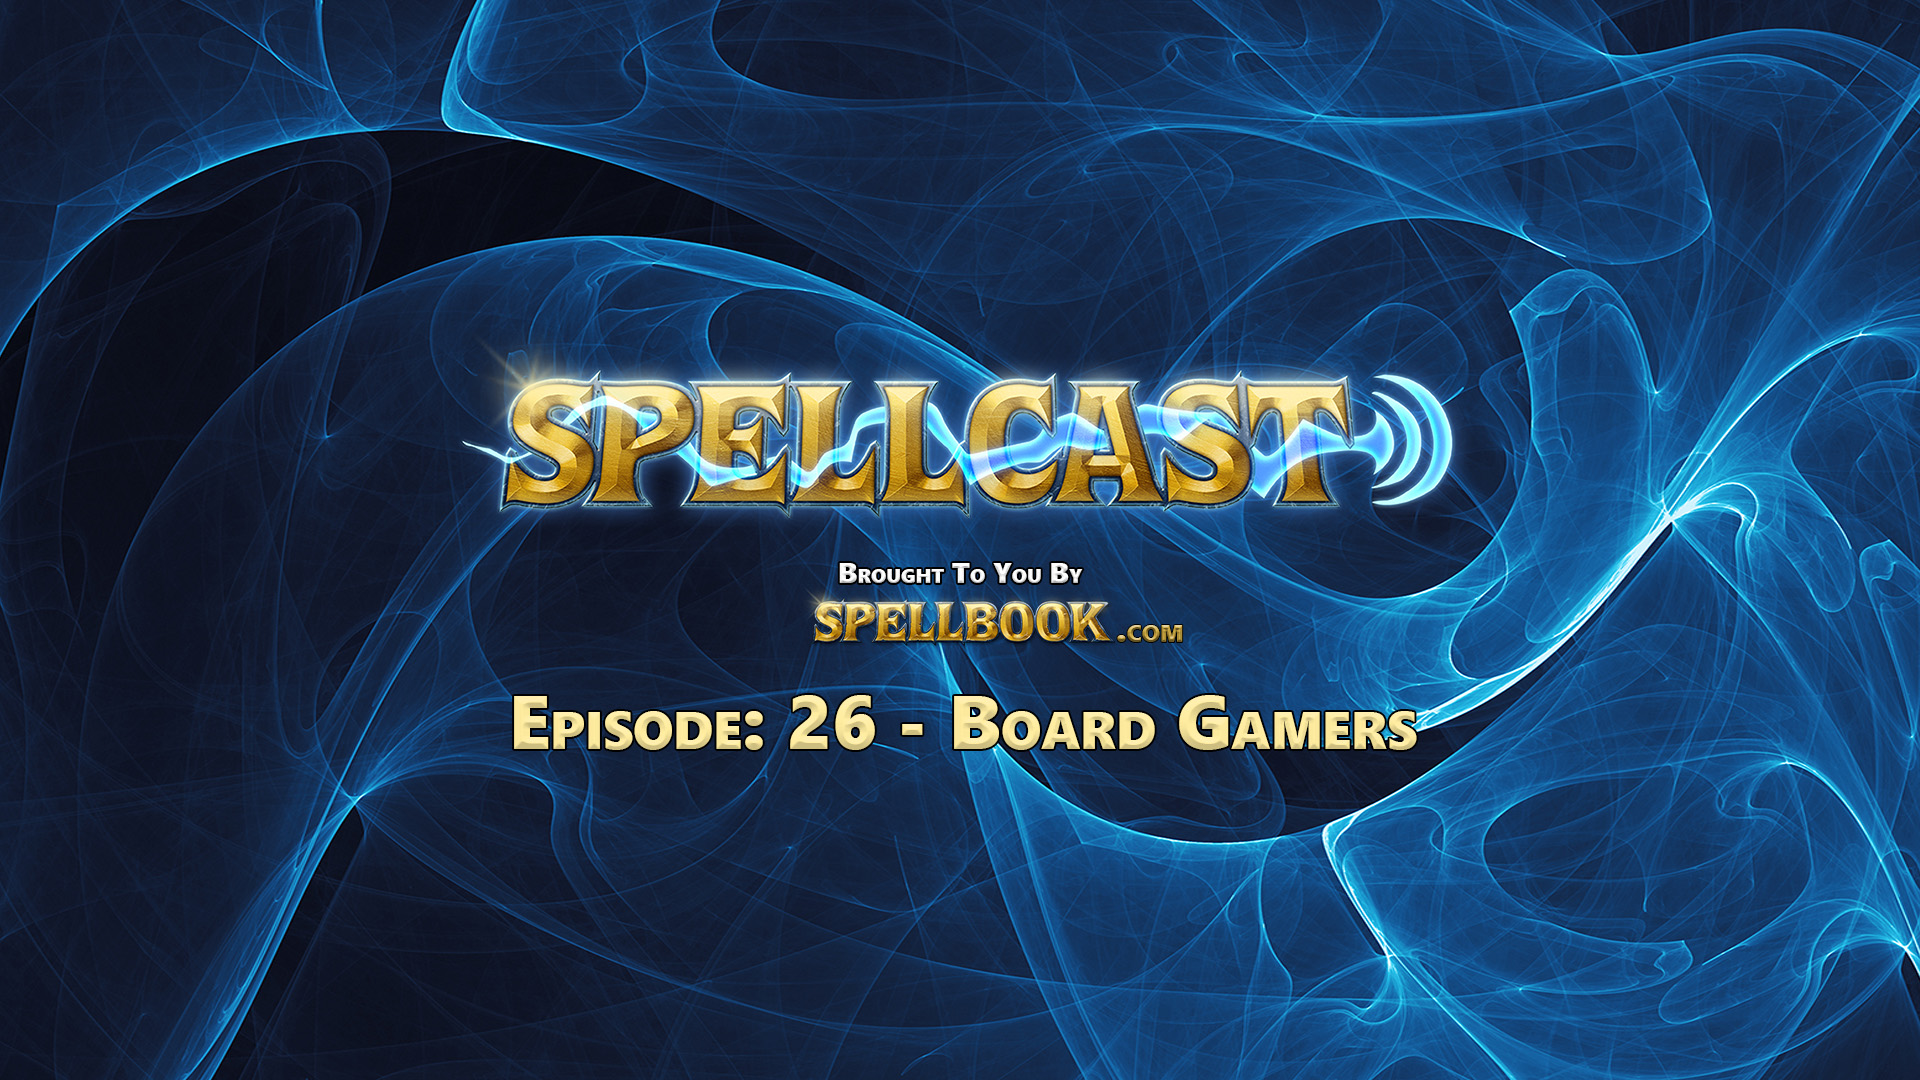 Spellcast Episode: 26 - Board Gamers